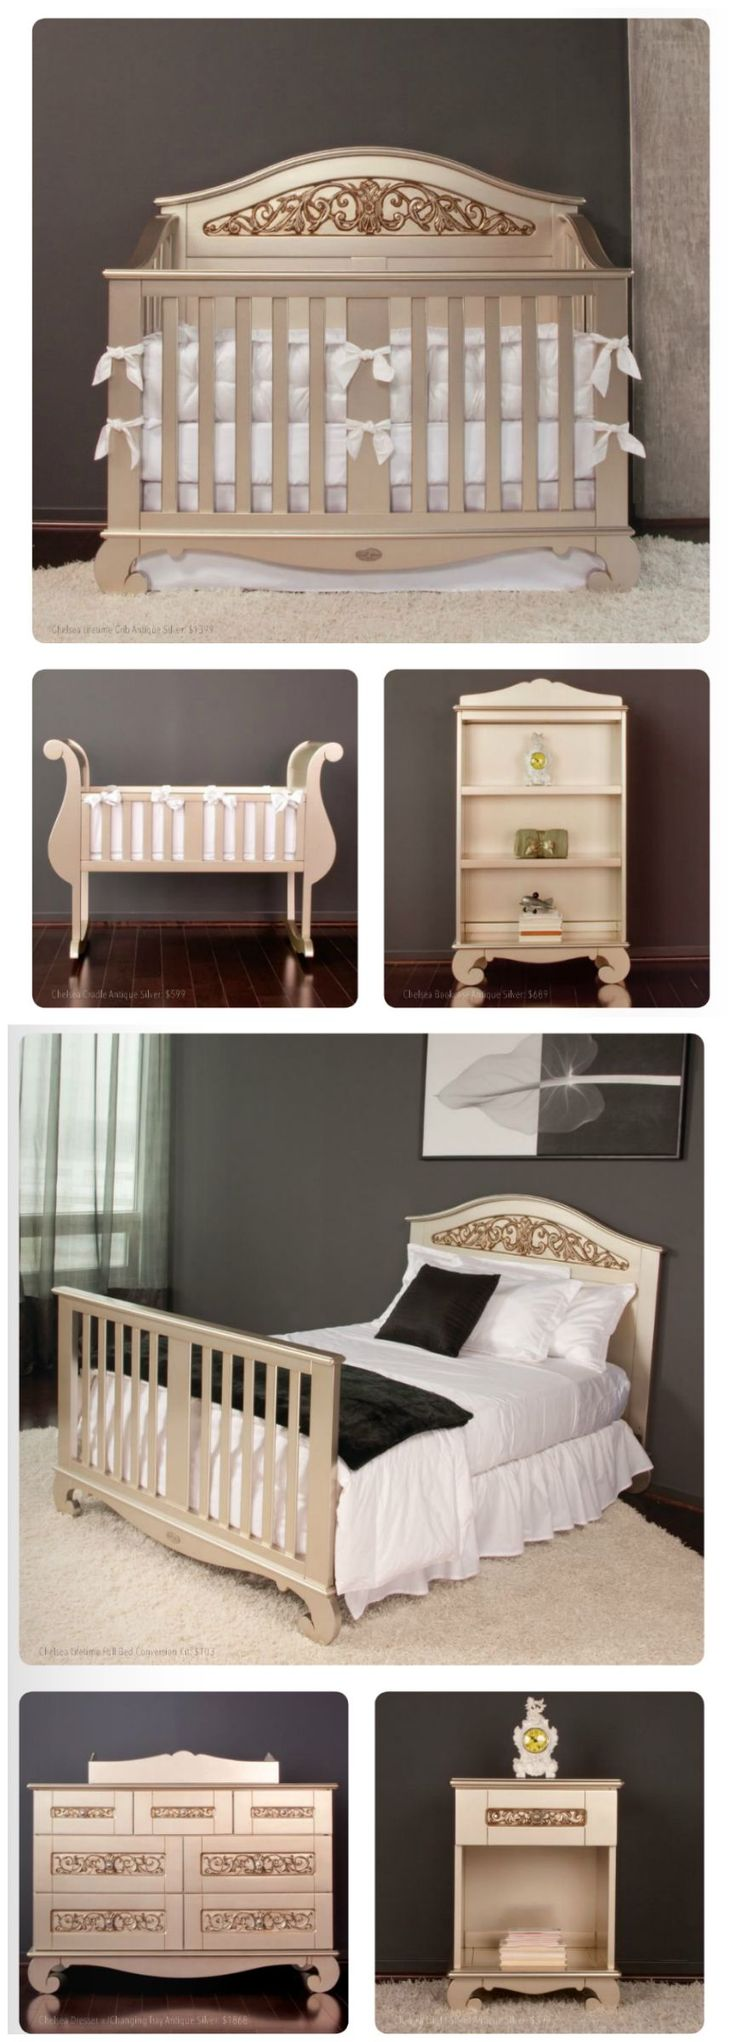 silver nursery furniture. the chelsea silver nursery collection by bratt decor is drop dead gorgeous offers so many furniture